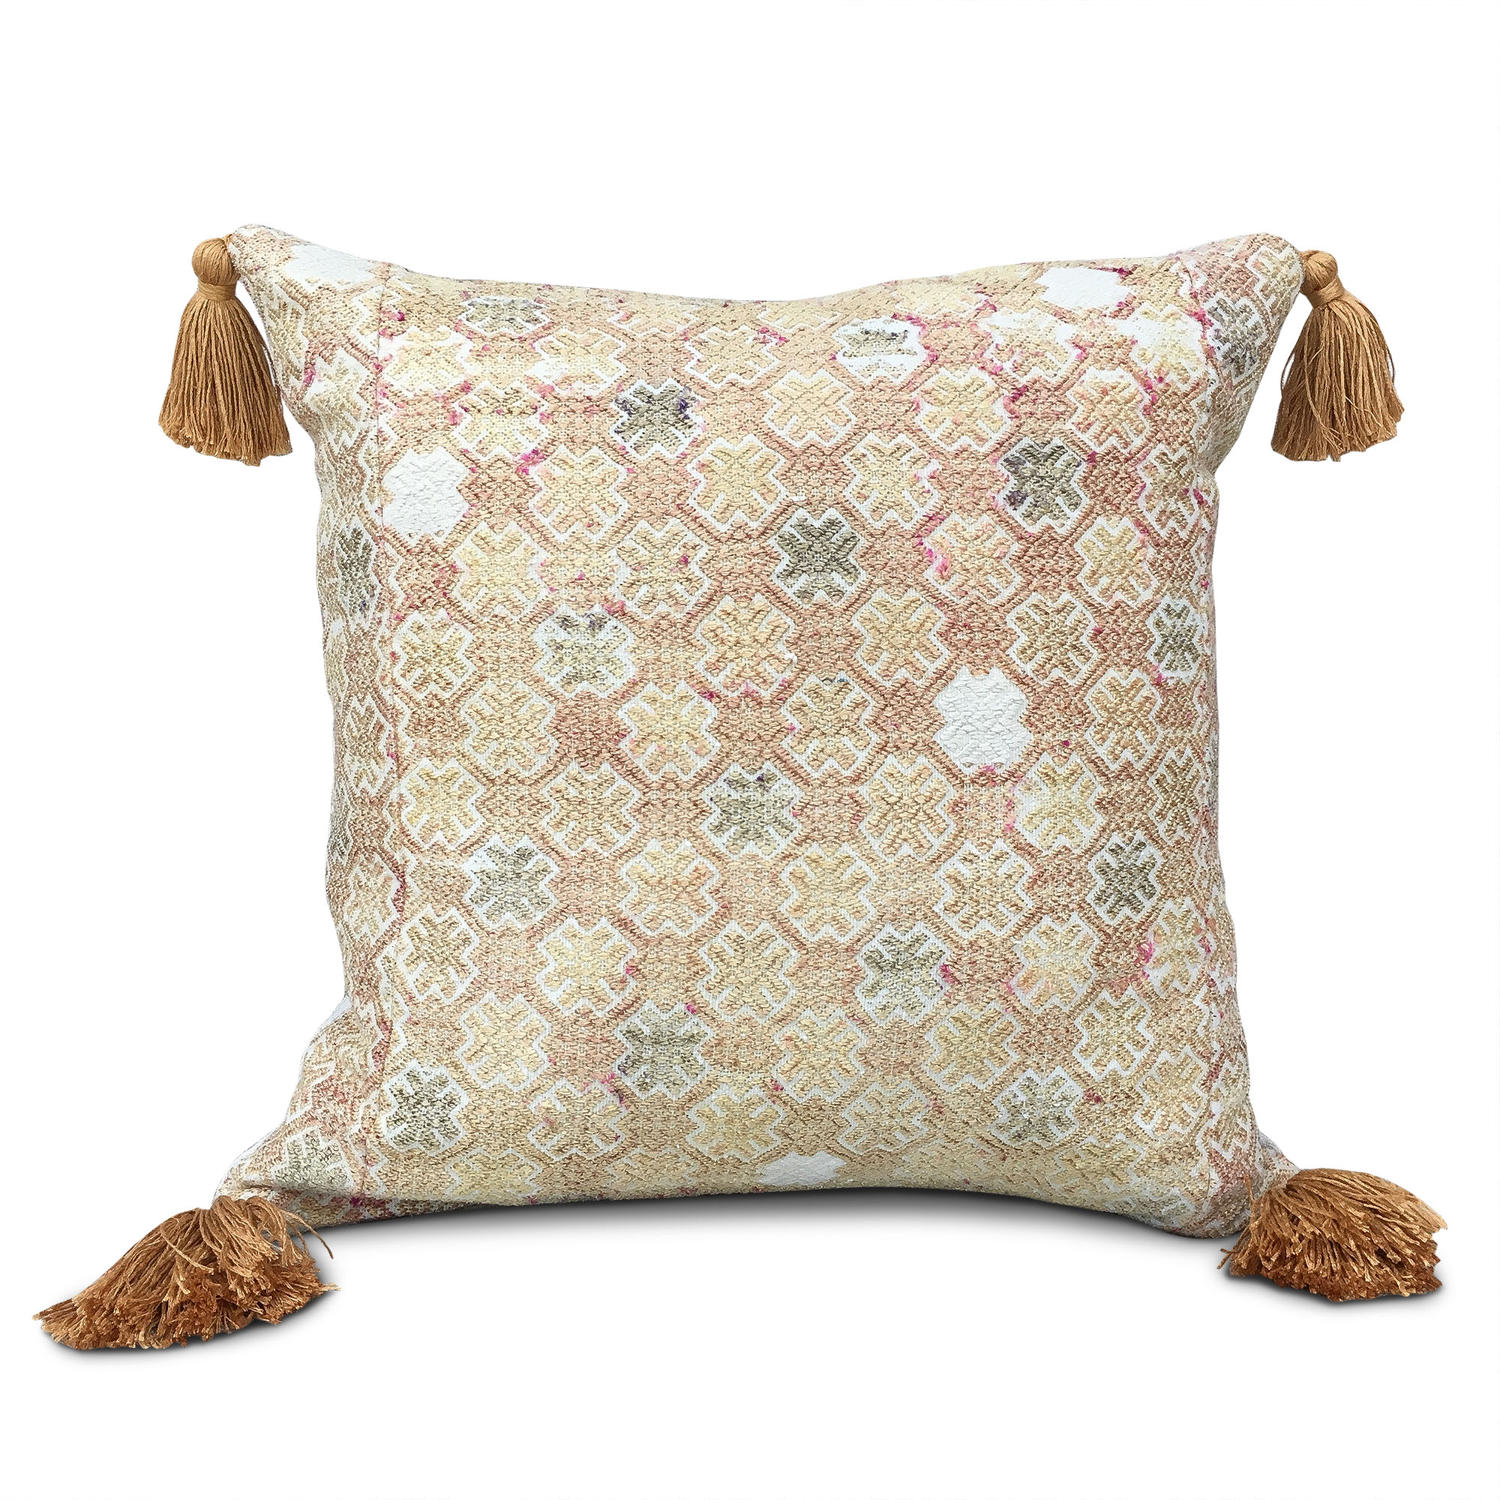 Zhuang Wedding Blanket Cushion